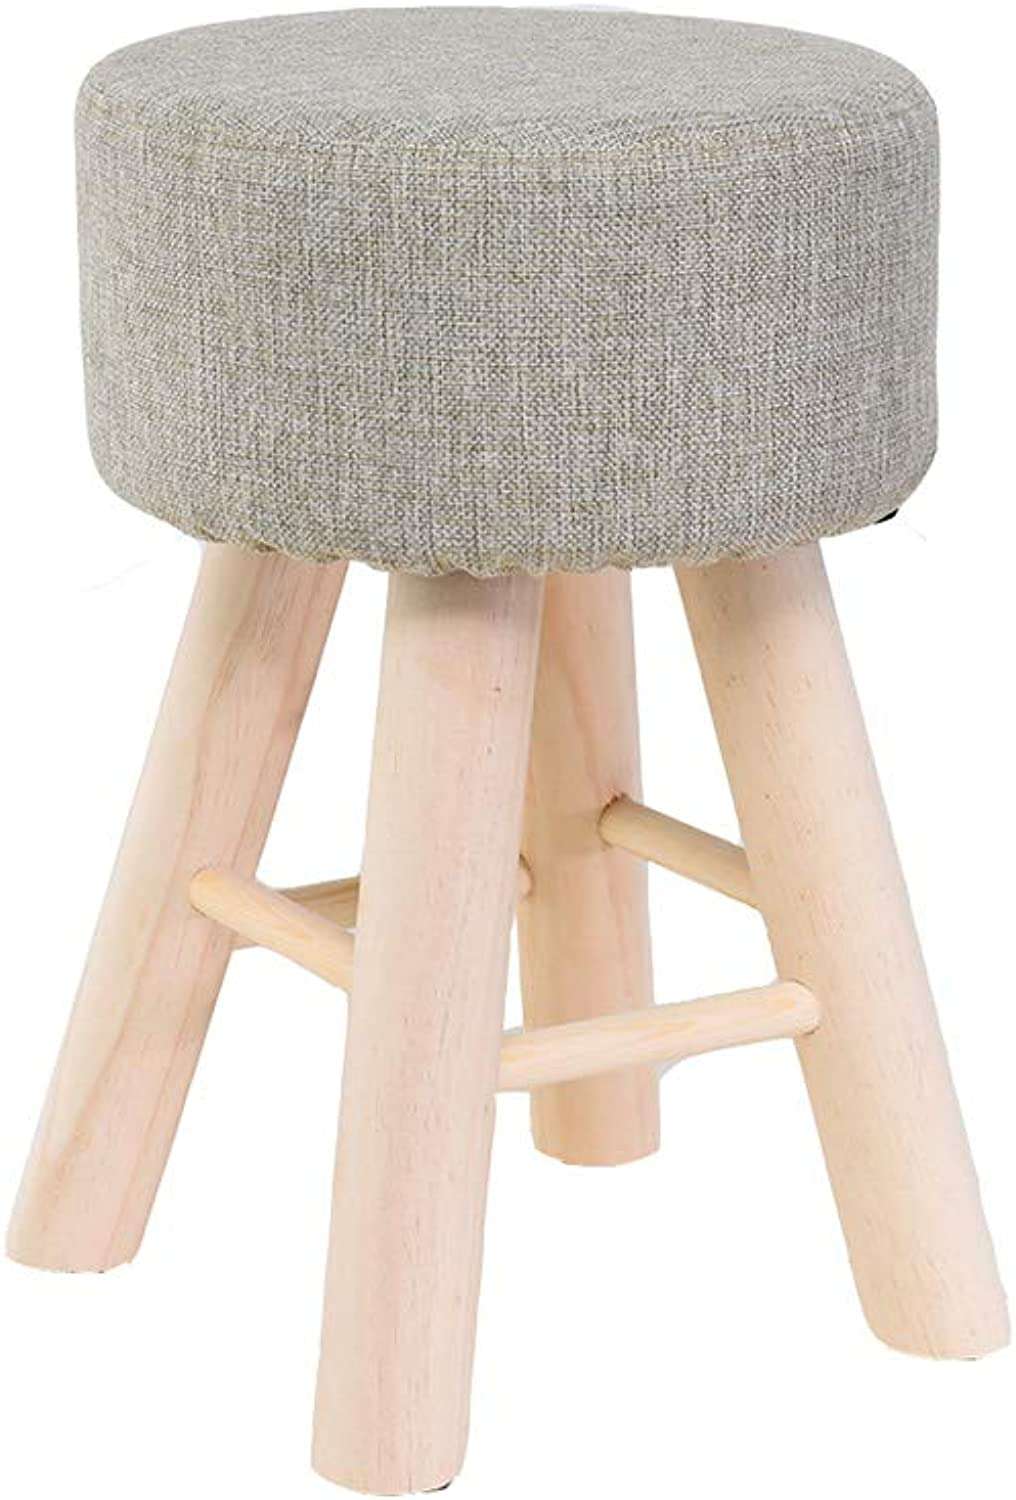 Solid Wood Stool Home Modern Living Room Stool Adult Wood Stool Makeup Stool Dressing Stool (color   D)